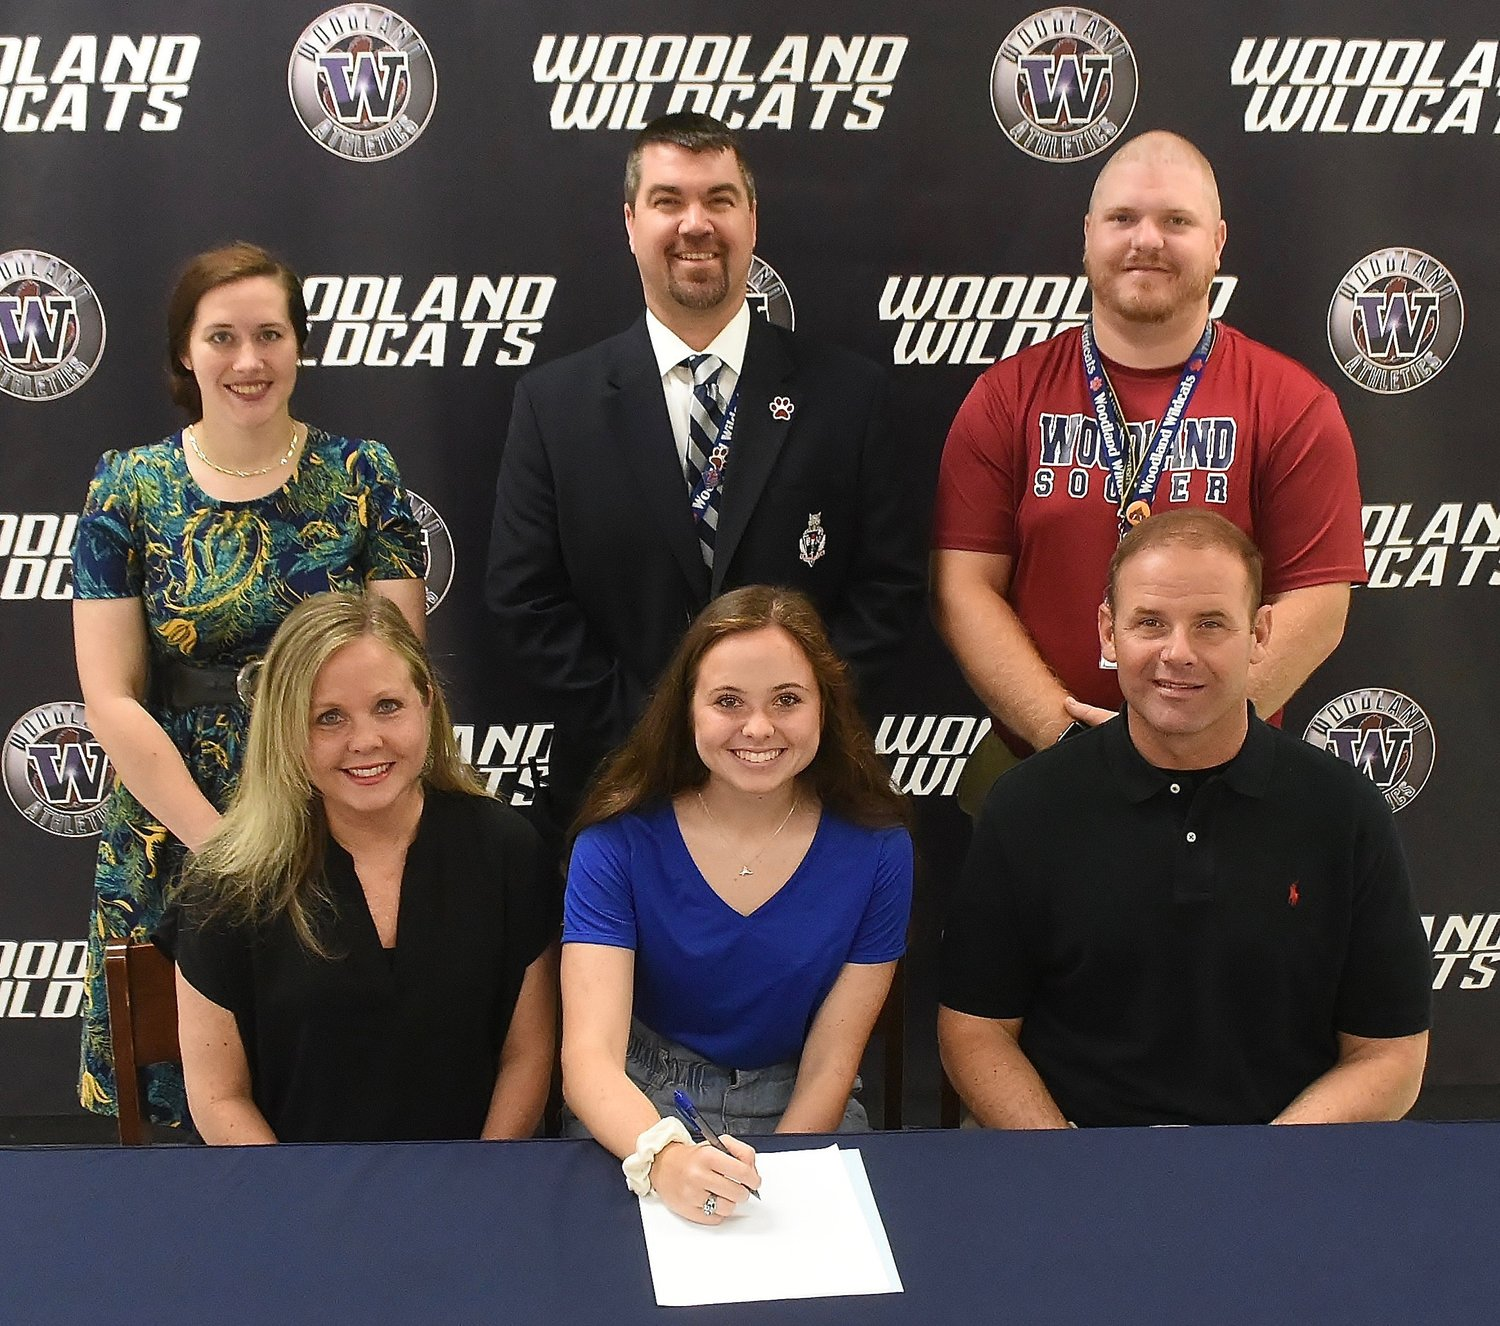 Recent Woodland High graduate Molly Plott signed to play soccer with Shorter University. On hand for the signing were, from left, front row, Robin Plott, mother; Tony Plott, father; back row, Nicole Heiser, WHS girls soccer coach; John Howard, WHS athletic director; and Jonathan Cannon, former WHS girls soccer coach.